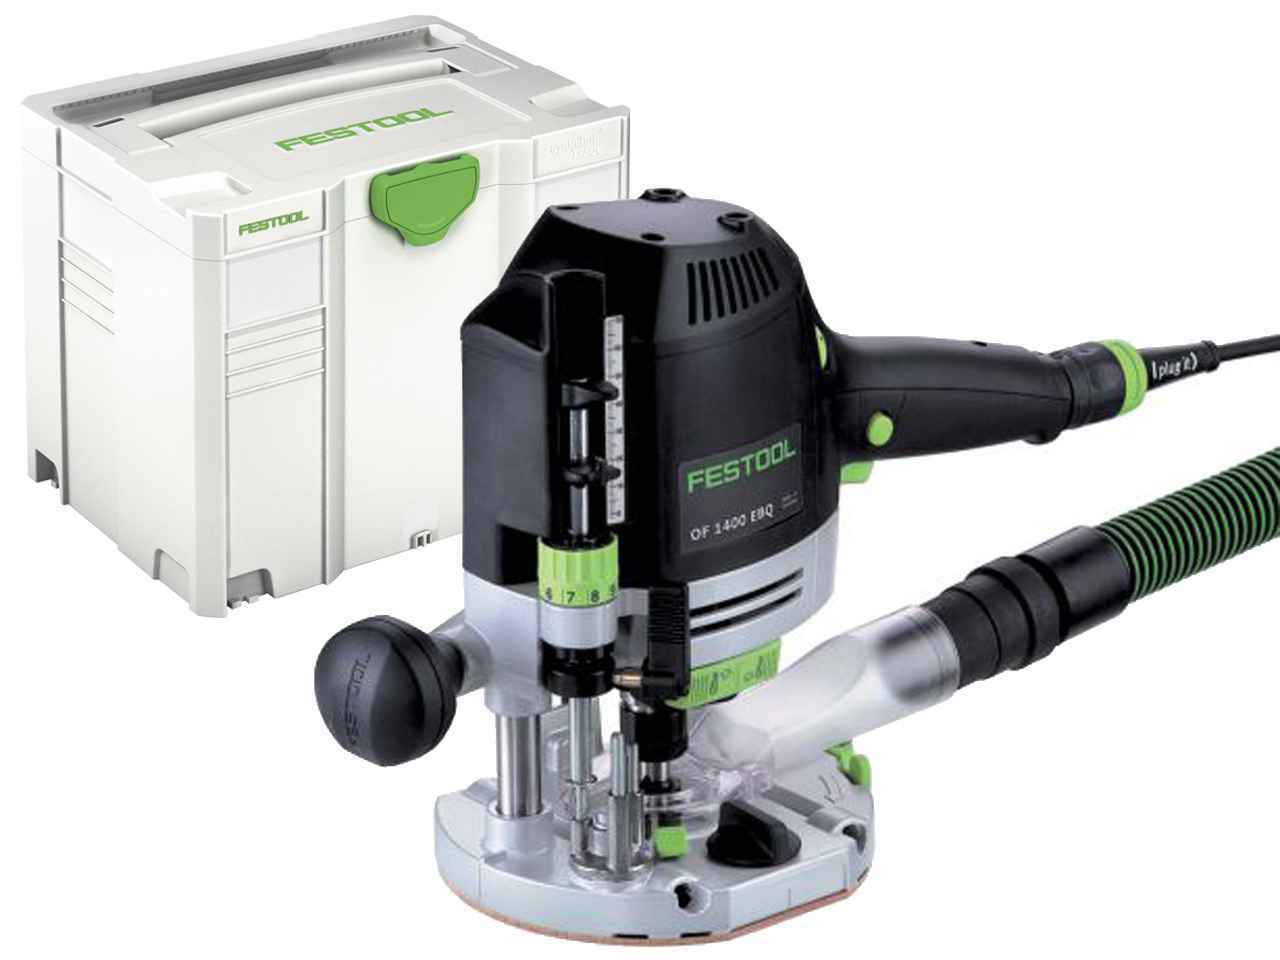 festool of1400 eq plus 110v 1400w router in systainer 4 t loc. Black Bedroom Furniture Sets. Home Design Ideas